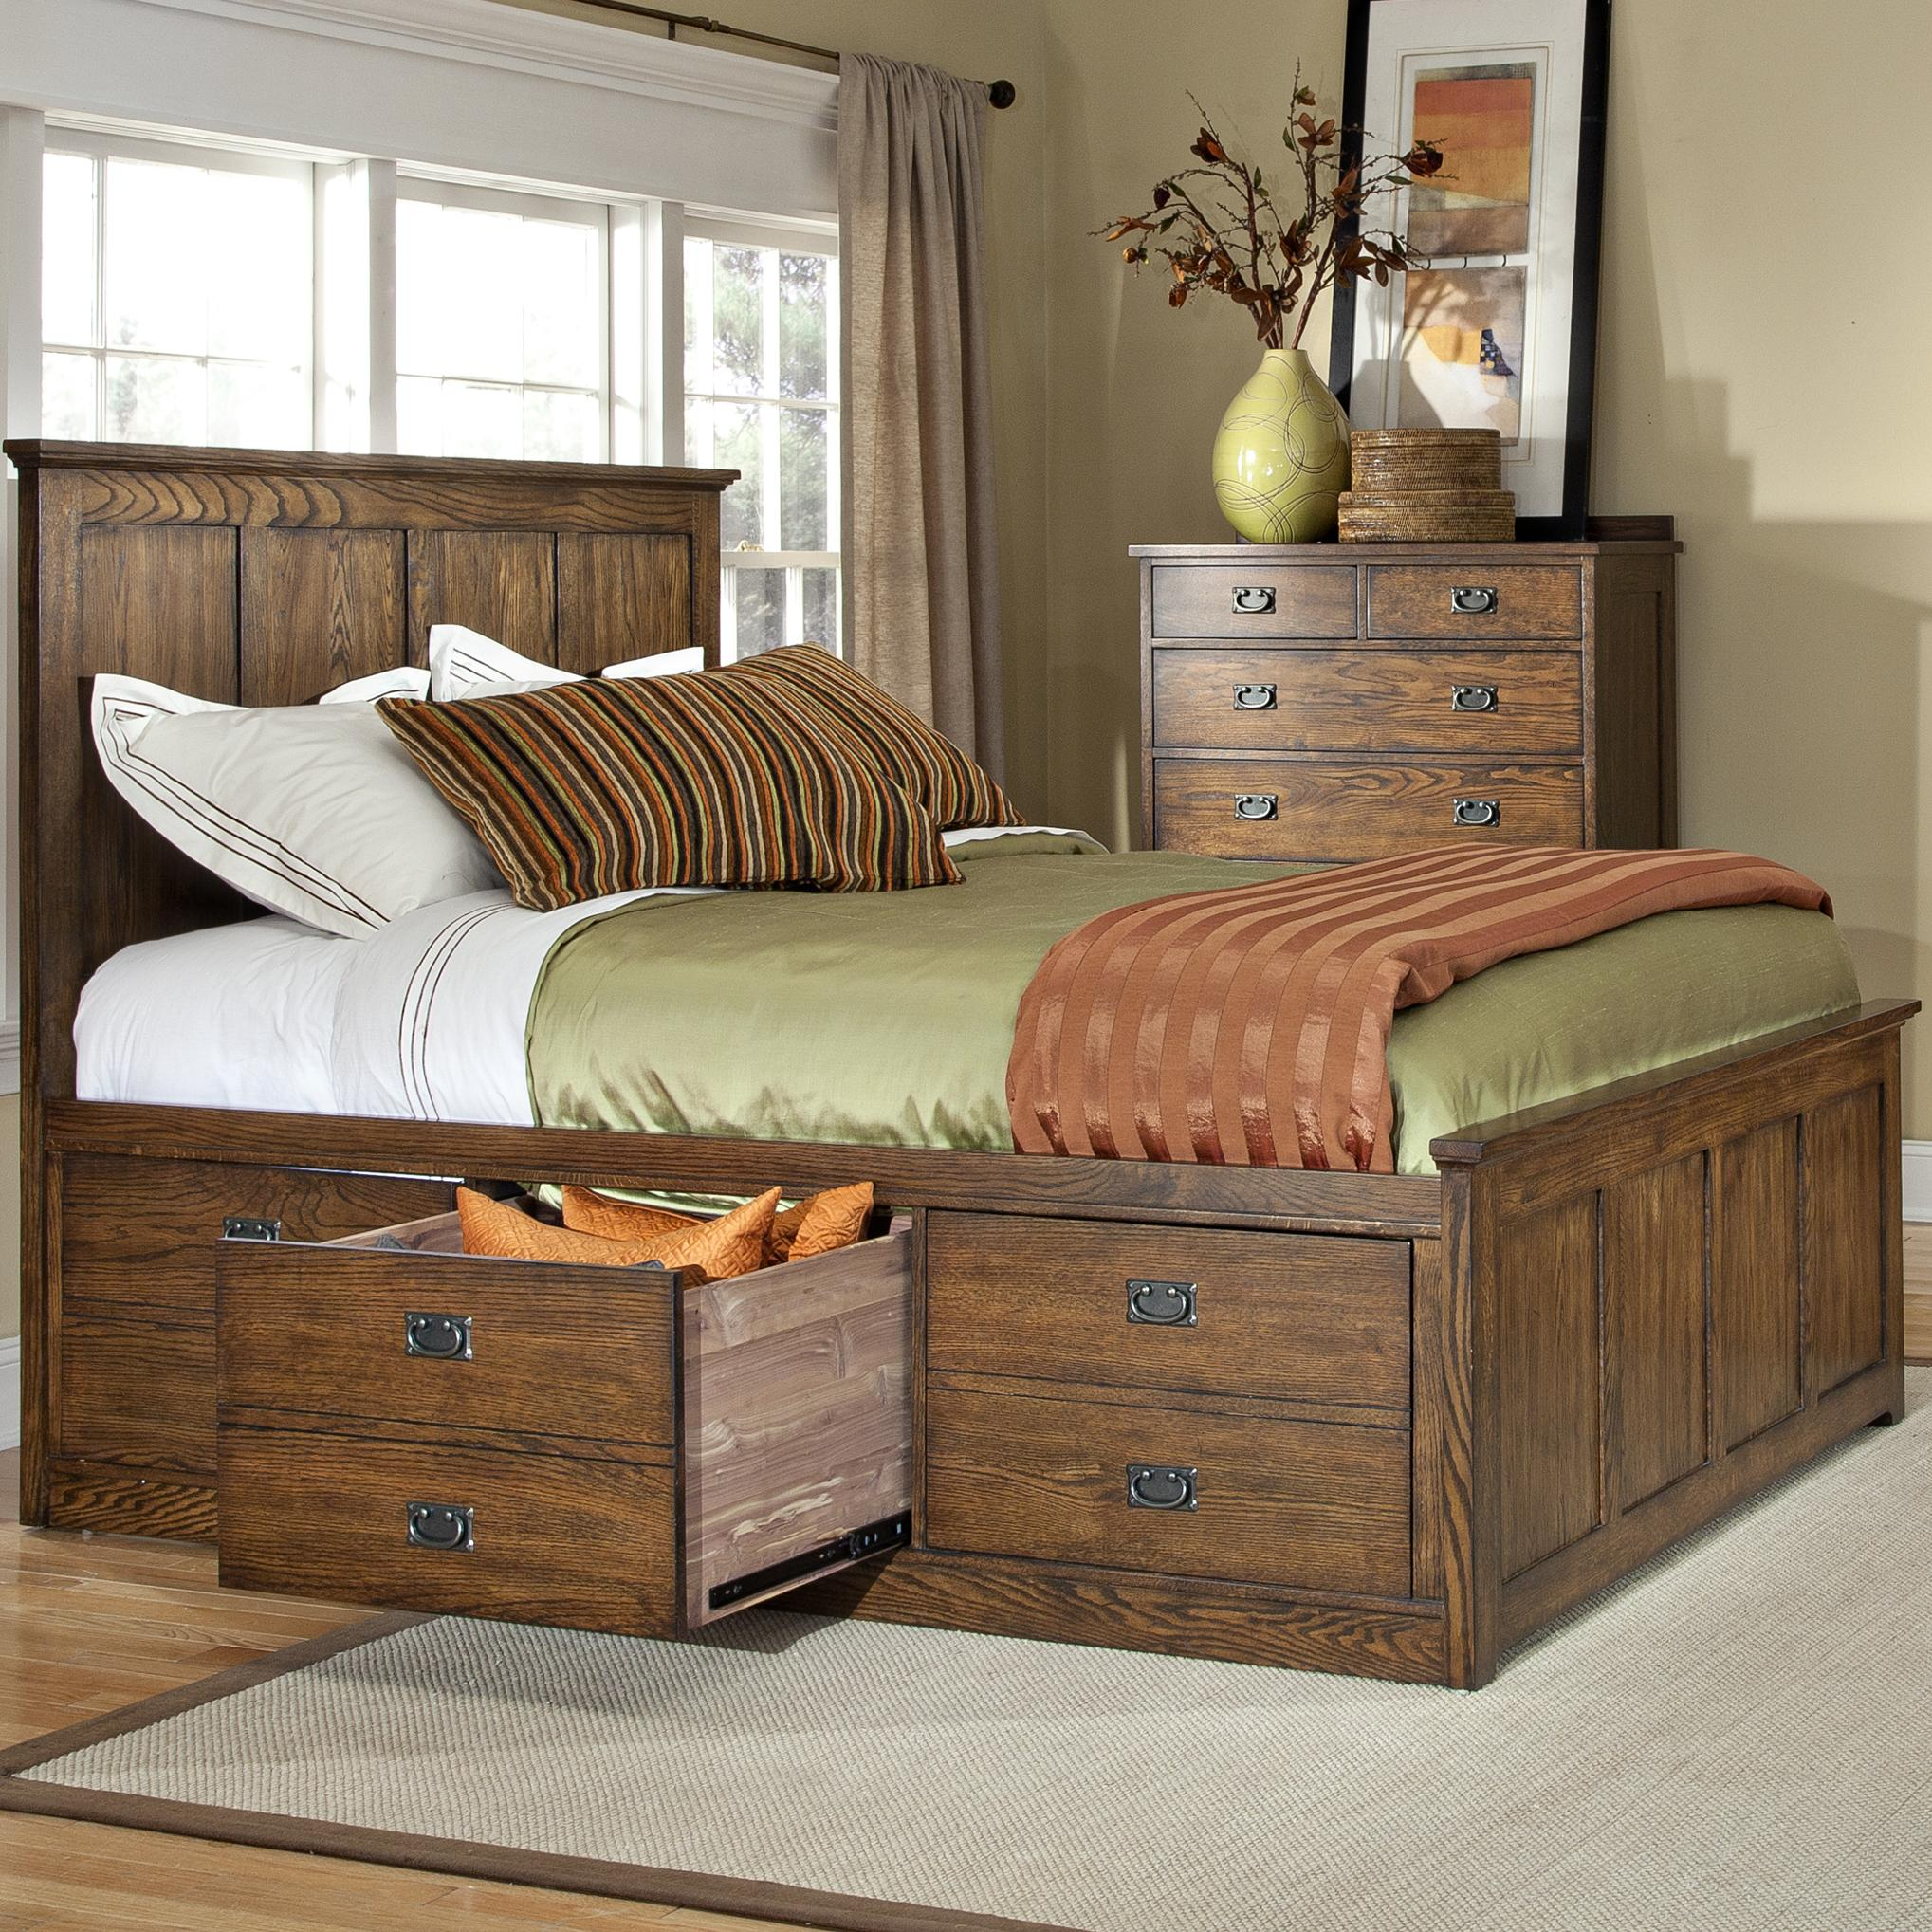 Intercon oak park op br 5853ck mis c mission california king bed with six underbed storage - Cal king bed with drawers ...